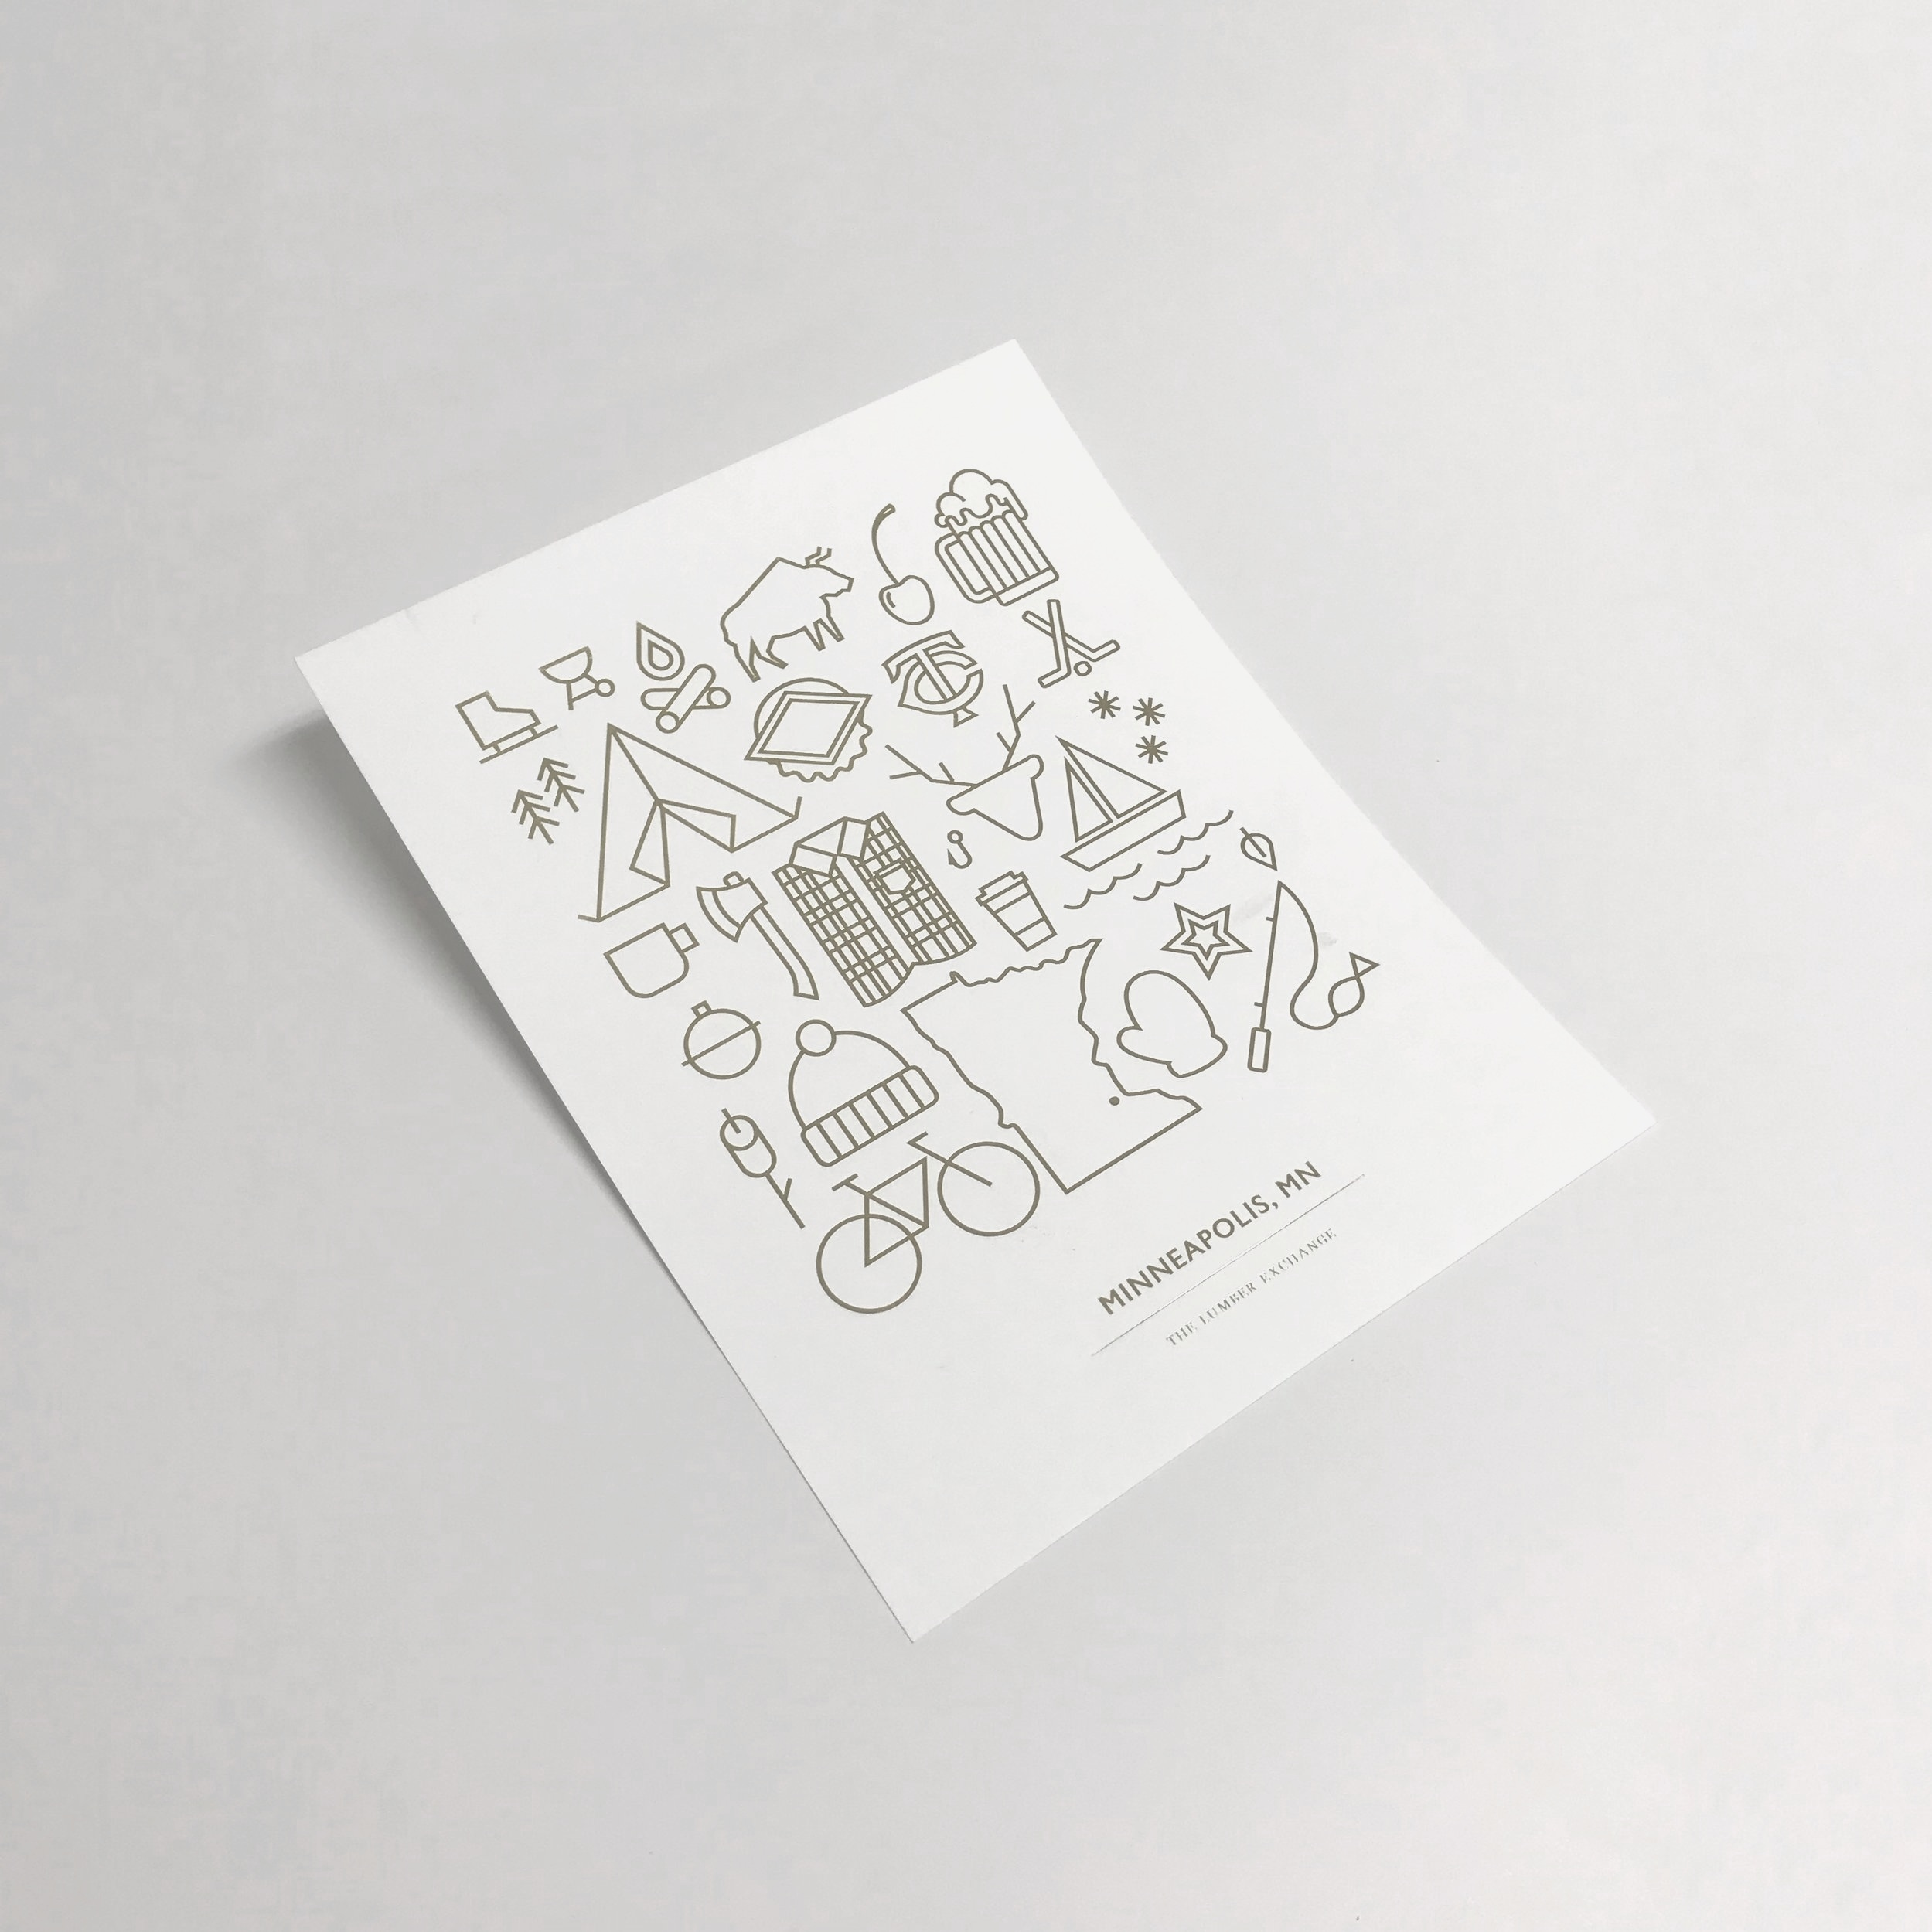 High quality letterpressed poster with foil printed in Minnesota